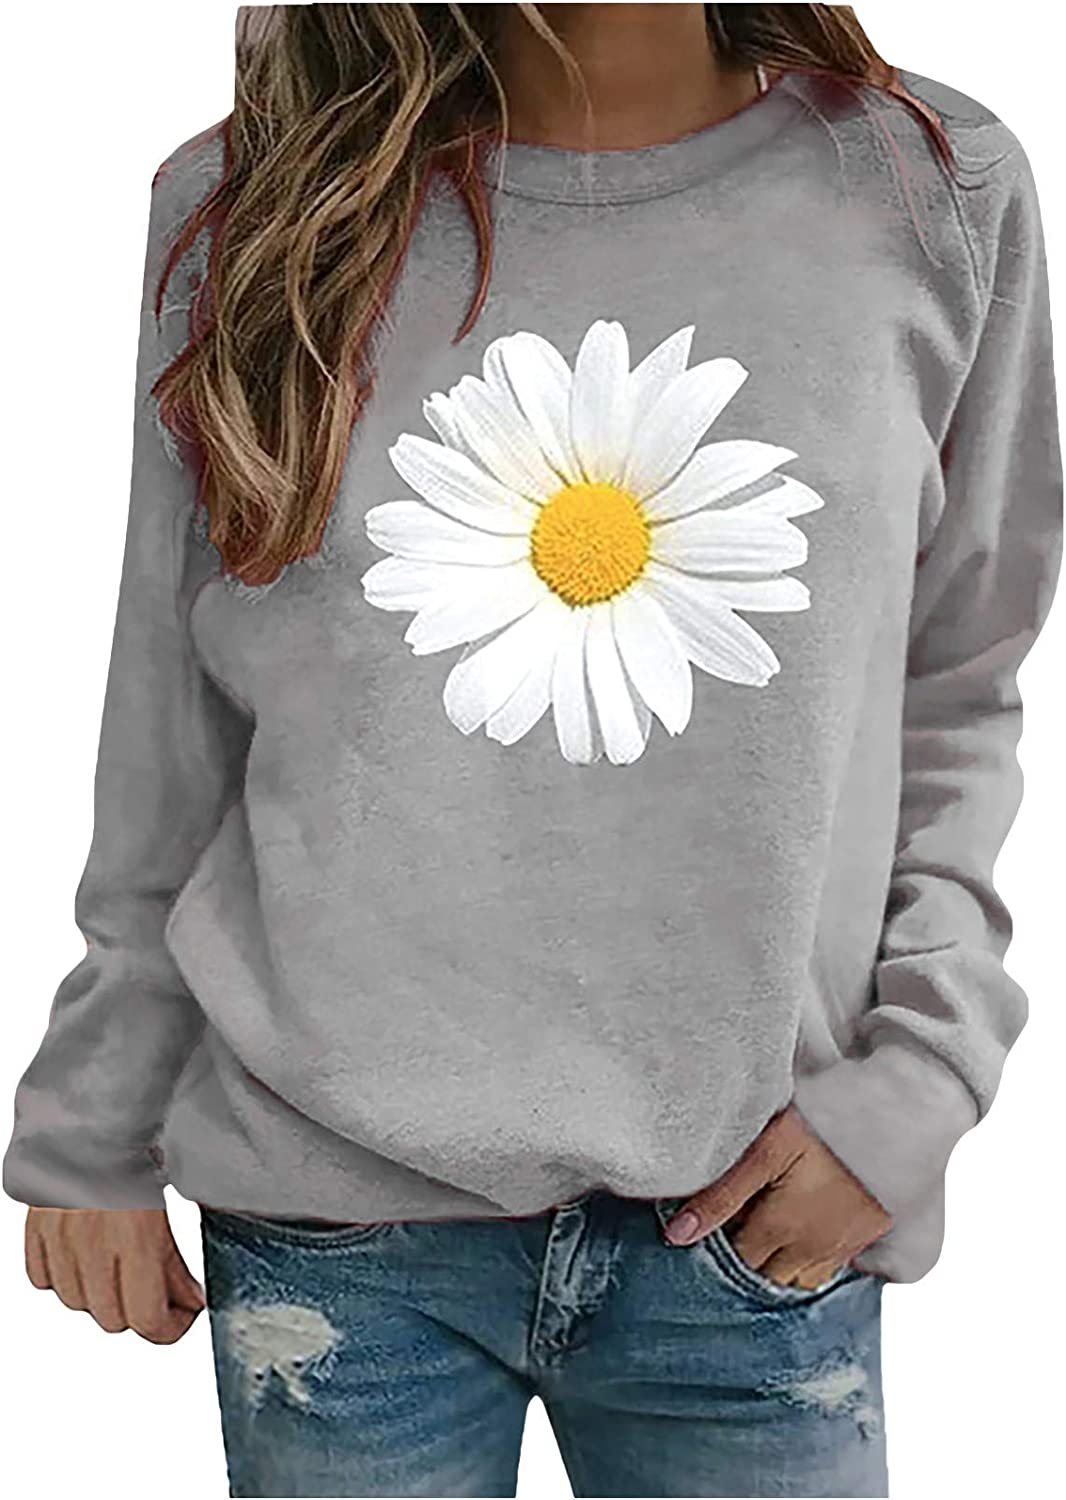 BAGELISE Women Sweatshirts,Womens Long Sleeve Tops Color Block Round Neck Shirts Casual Loose Fit Tunics Tops